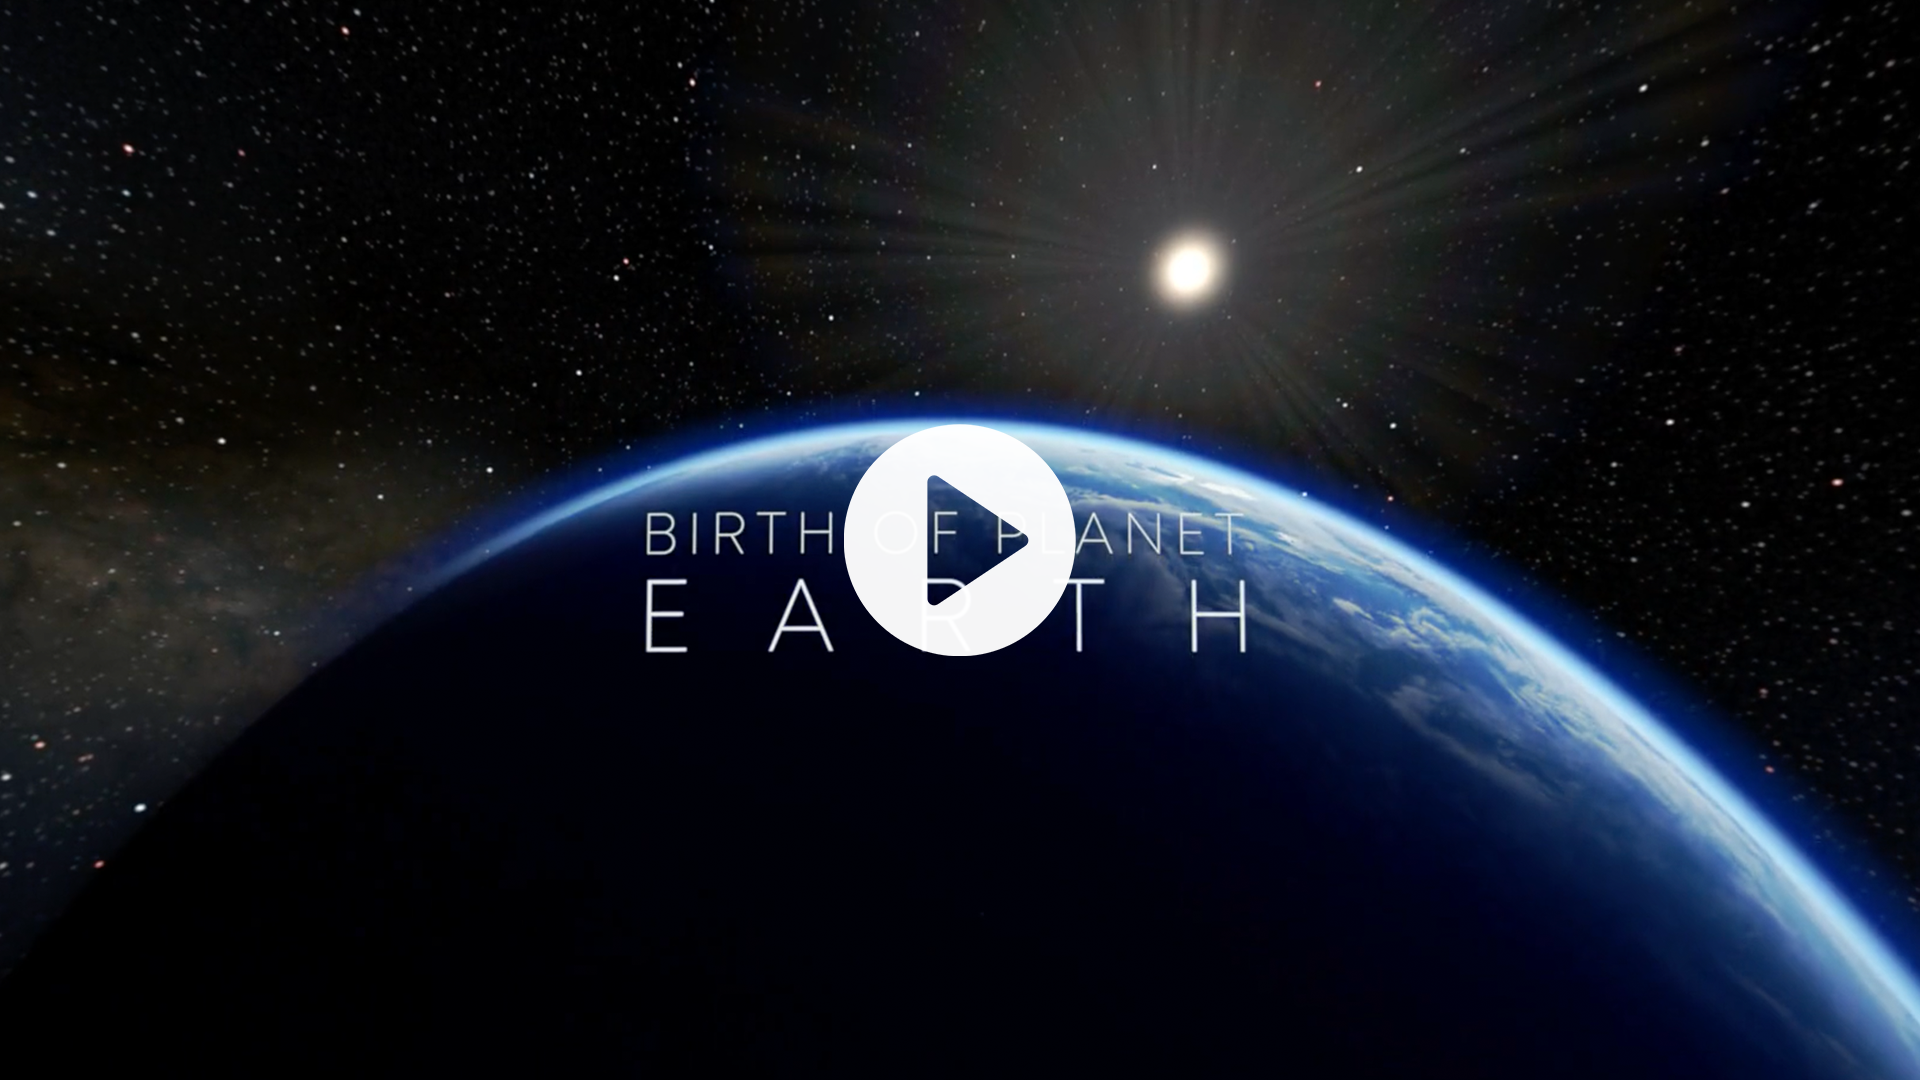 BIRTH OF PLANET EARTH